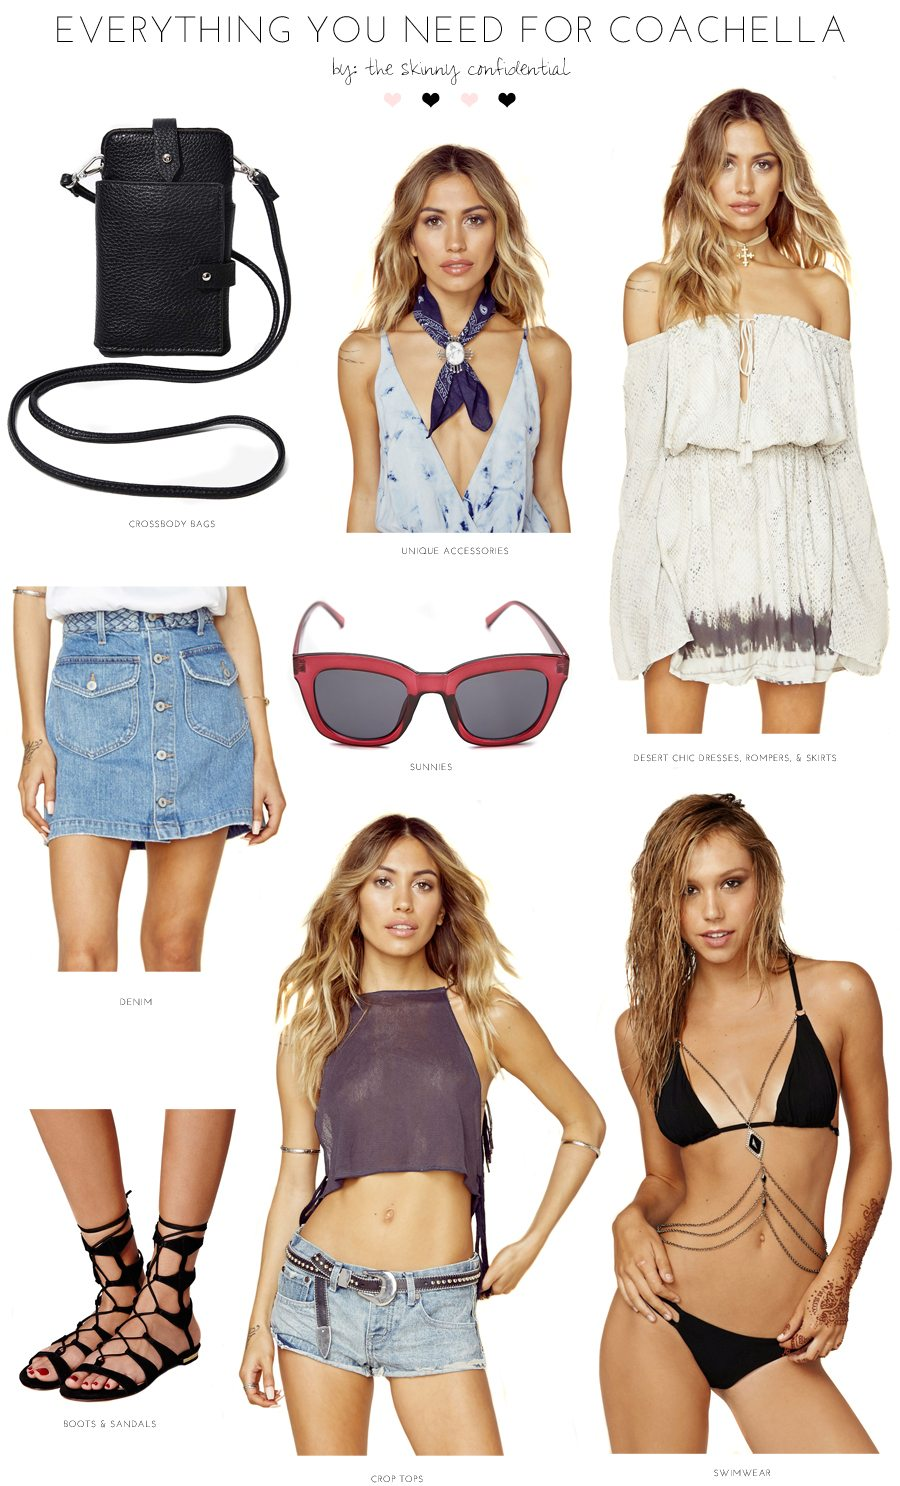 coachella essentials | by the skinny confidential